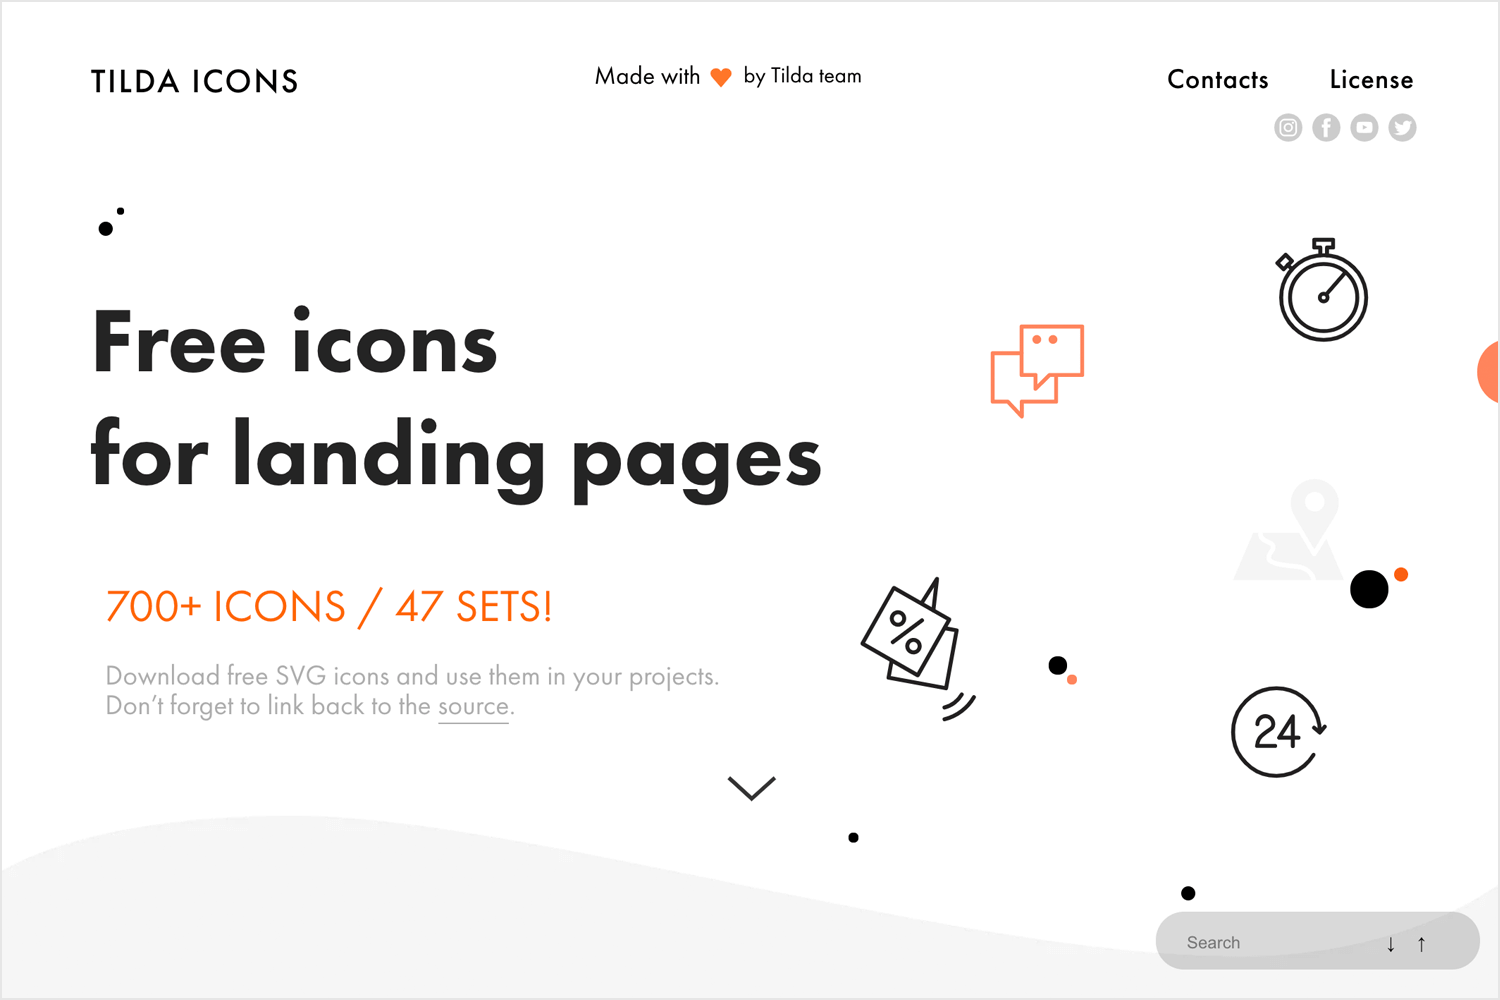 tilda publishing as a place for free icons